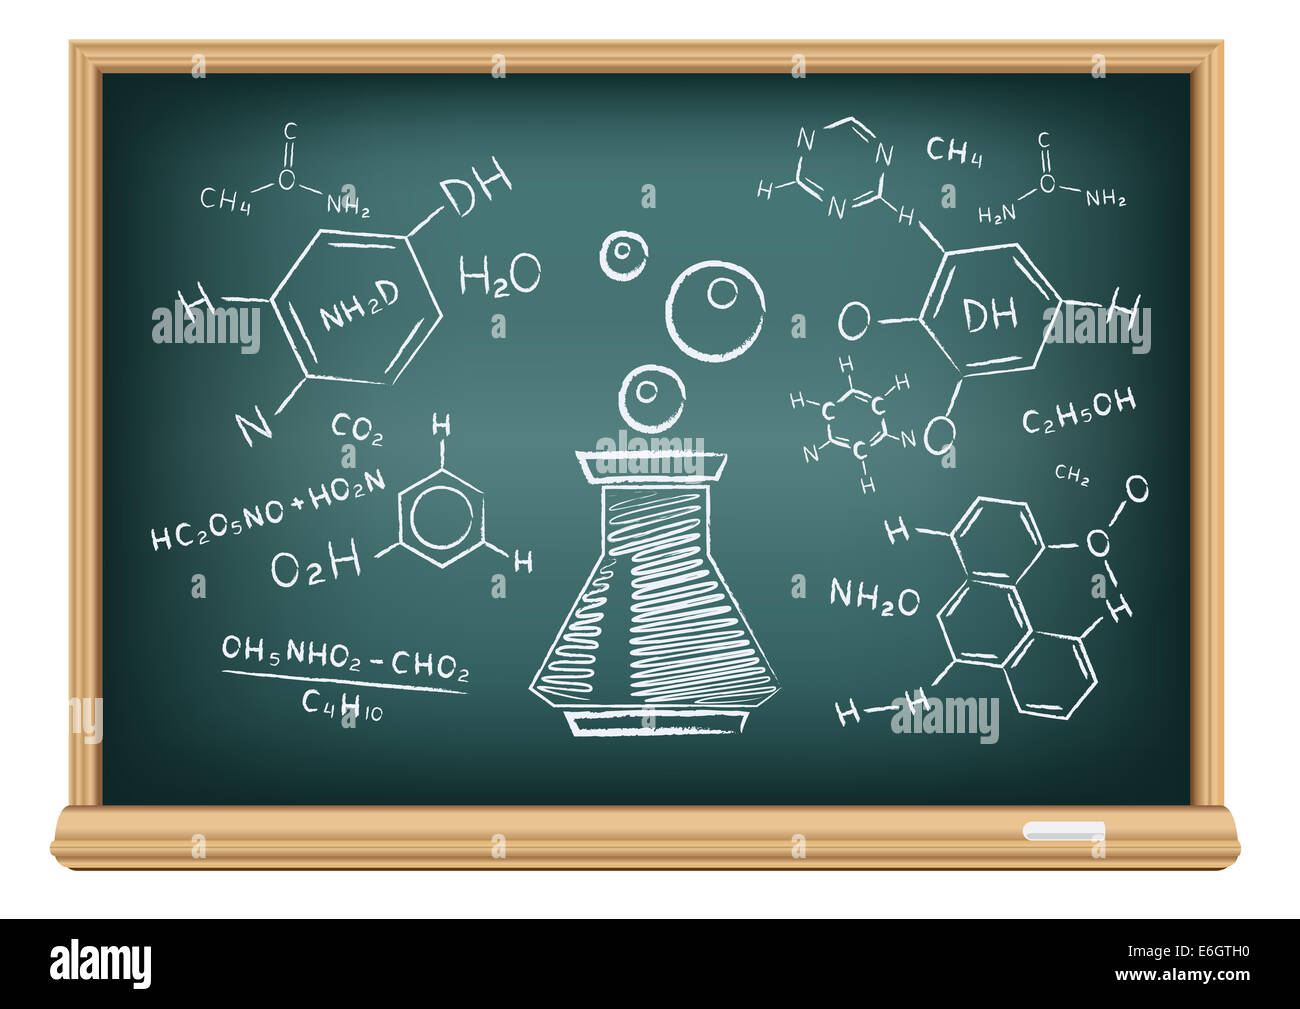 The school blackboard and chalk drawn chemical tube and formula - Stock Image